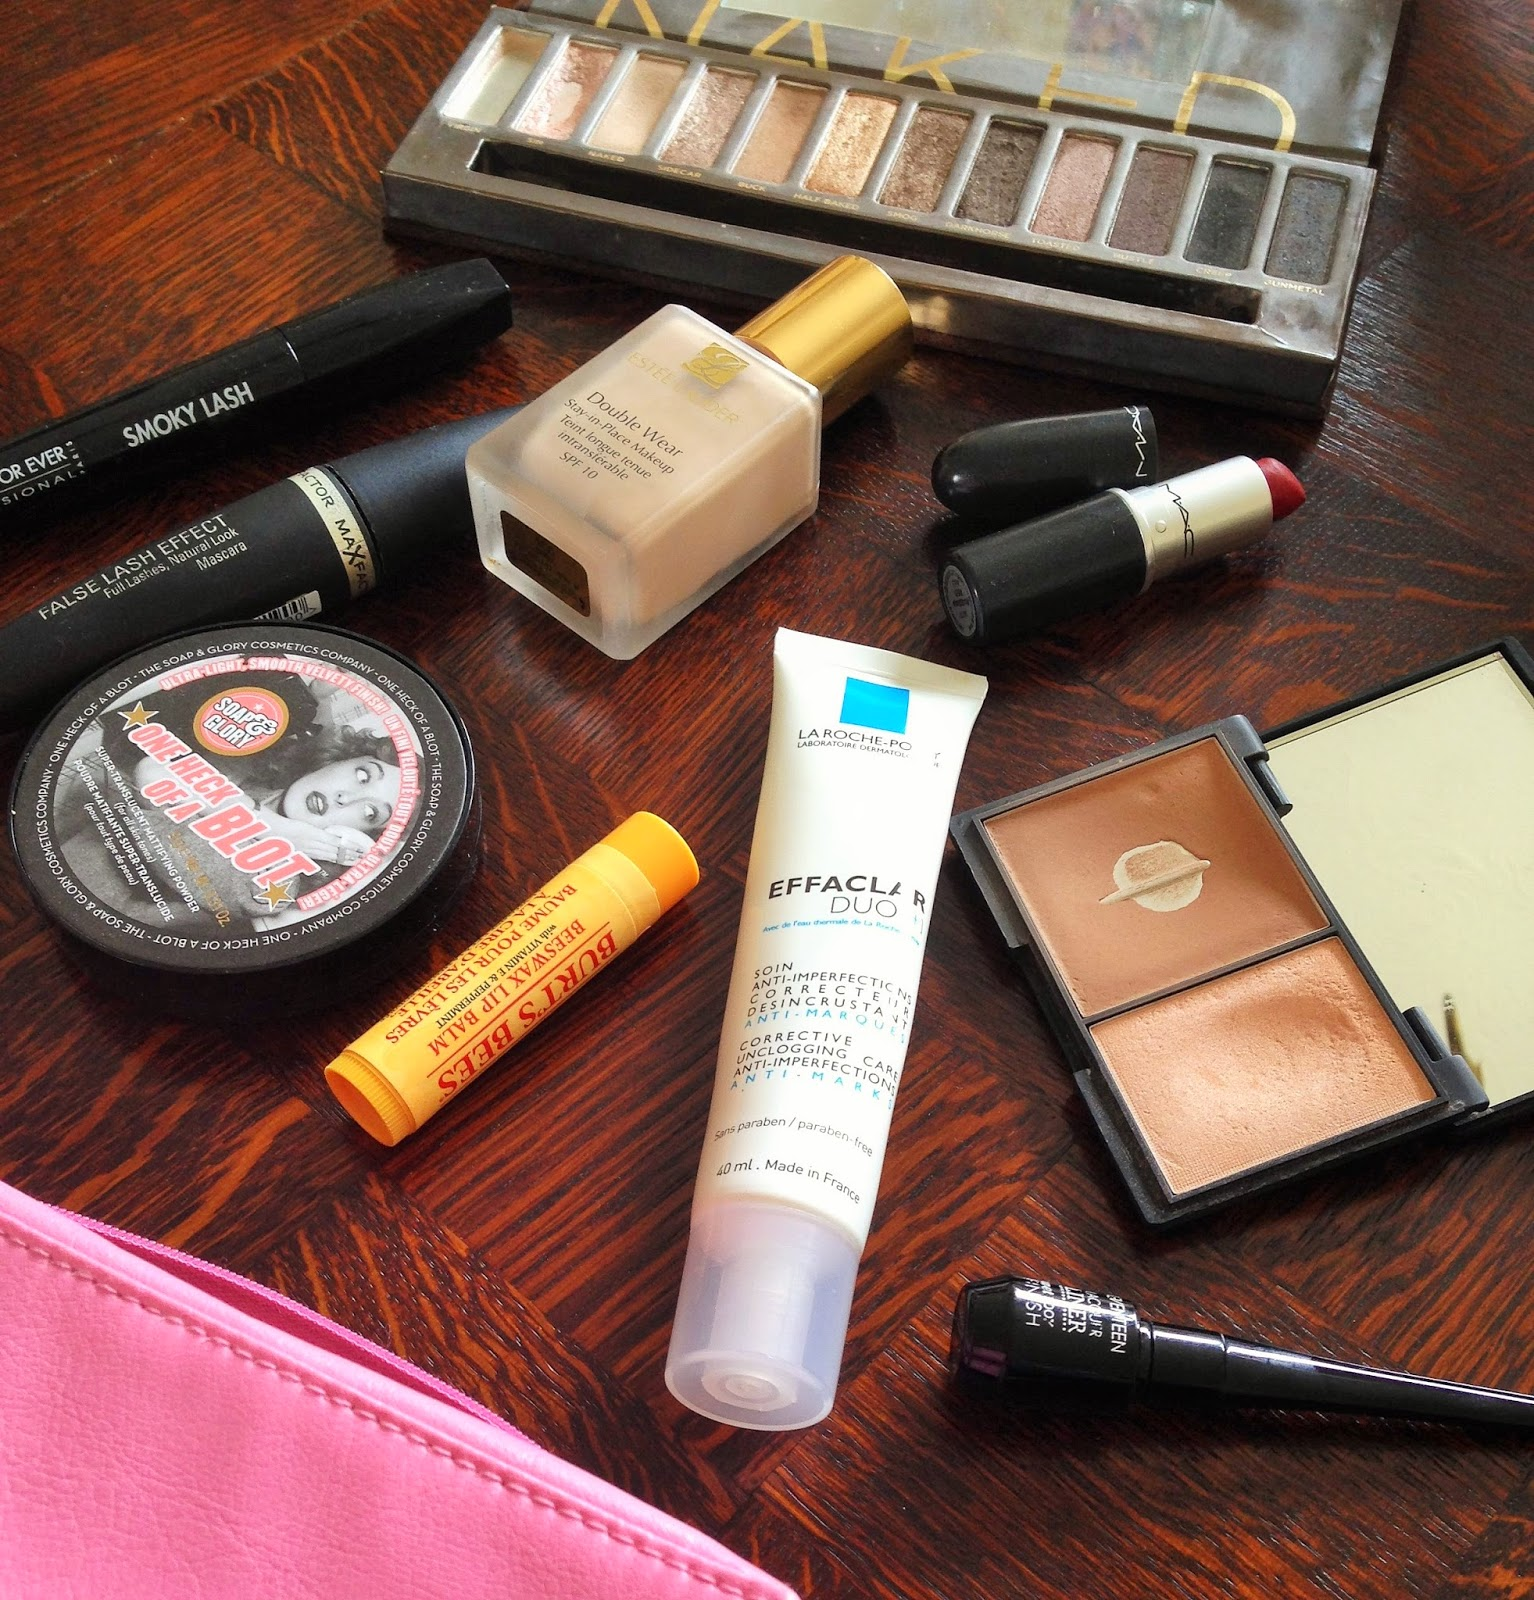 Holy Grail Blogger Urban Decay Sleek Estee Lauder Burts Bees MUFE Max Factor